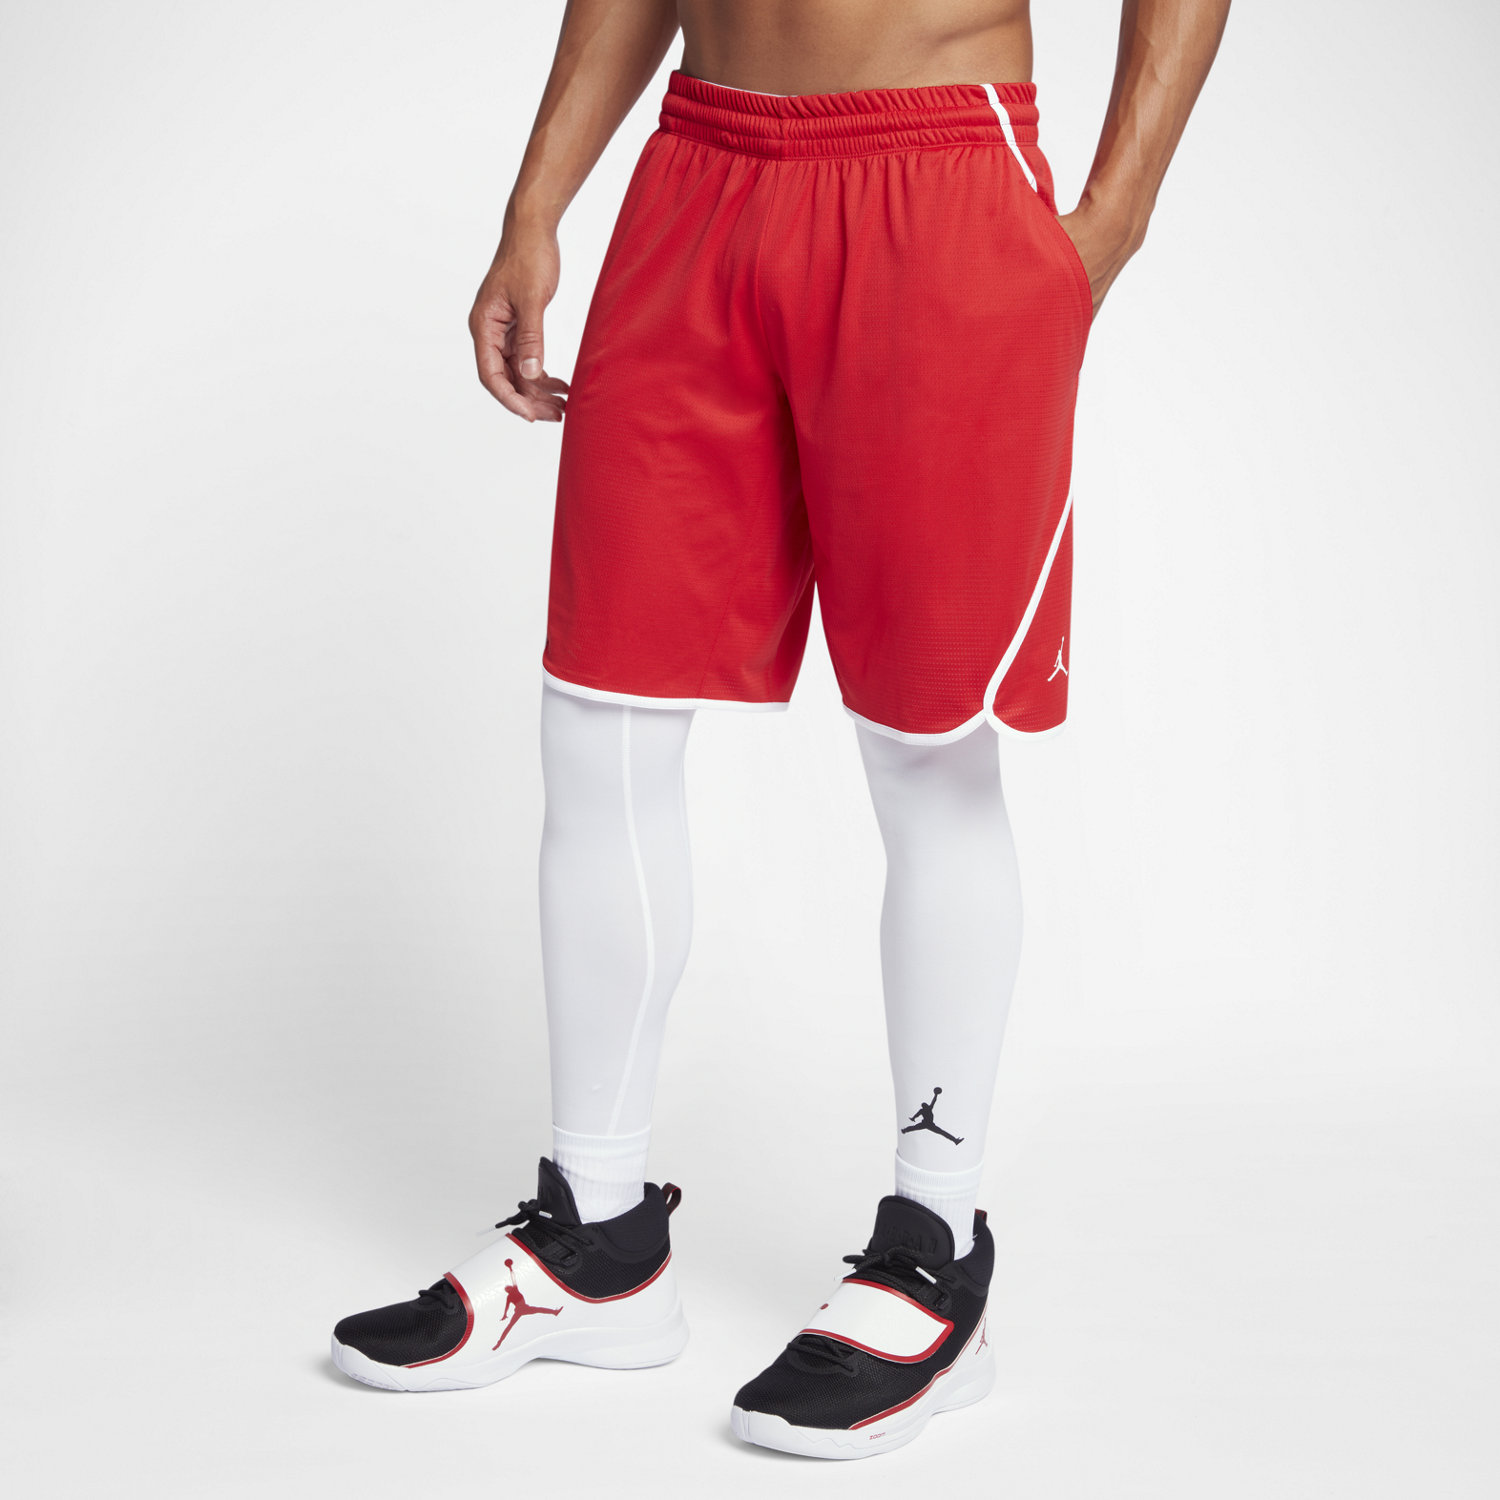 Mens basketball shorts on sale free shipping - Mens Basketball Shorts On Sale Free Shipping 52